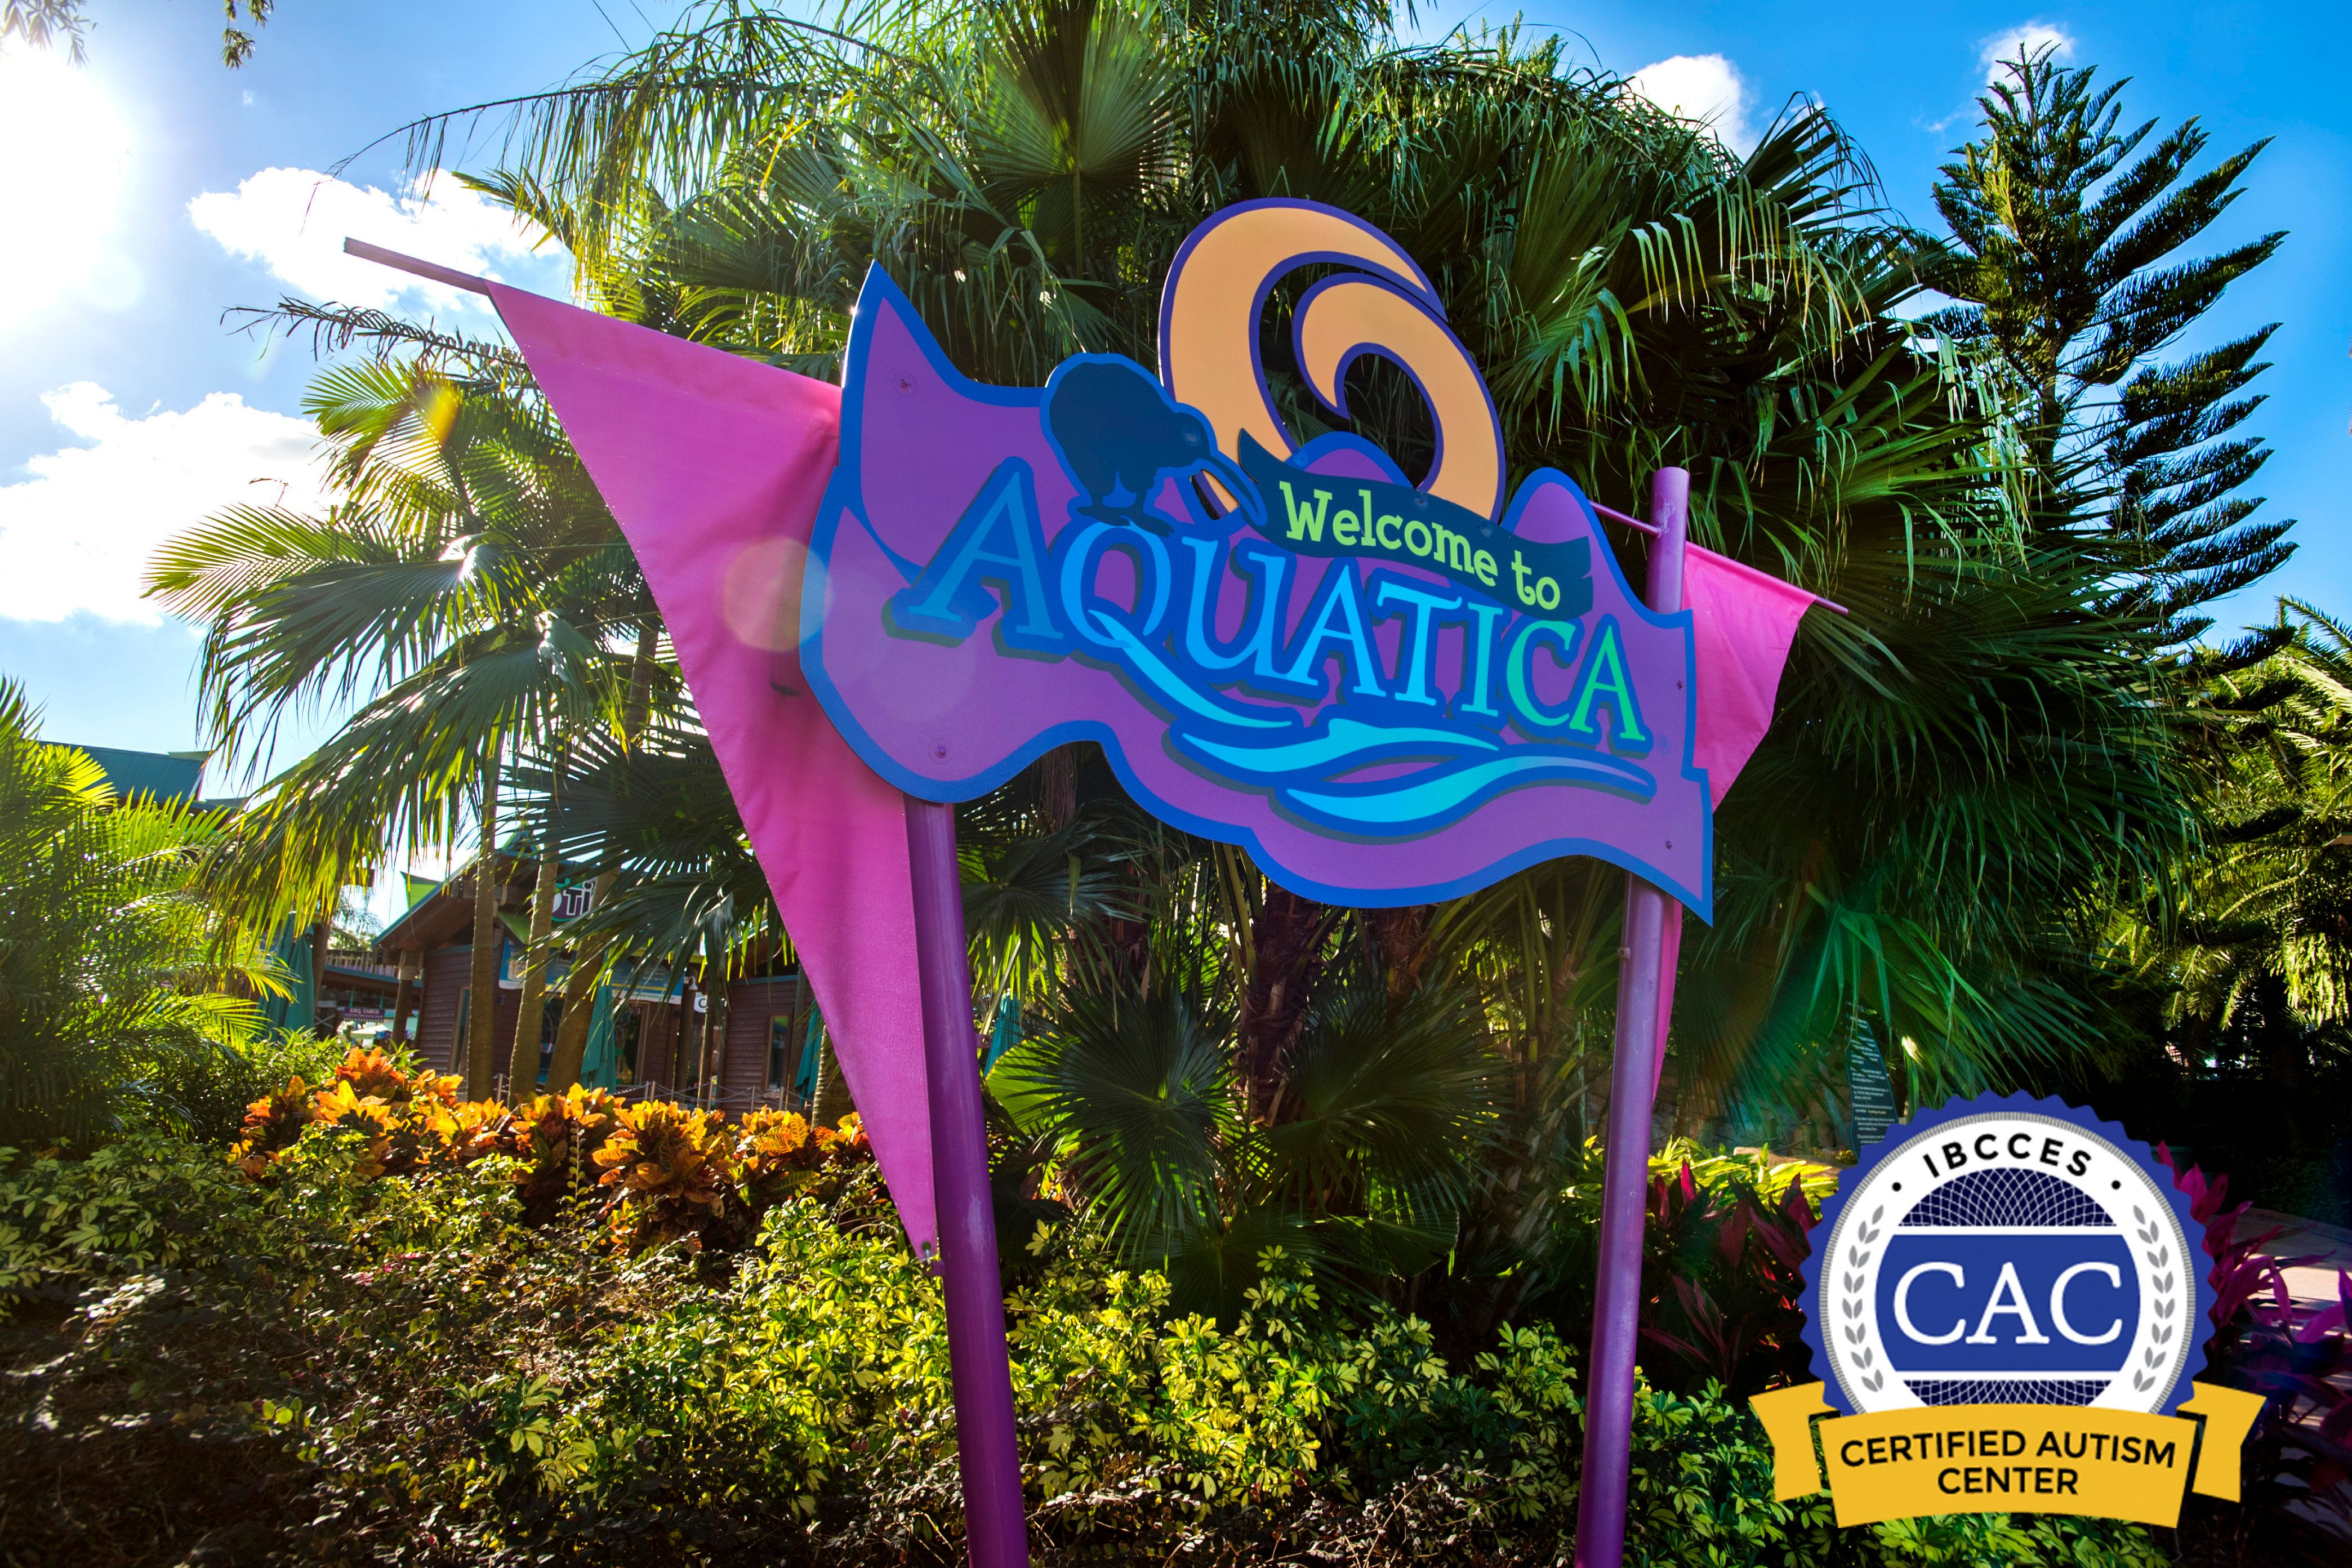 Aquatica Orlando became the first water park designated as a certified autism center by the International Board of Credentialing and Continuing Education Standards.